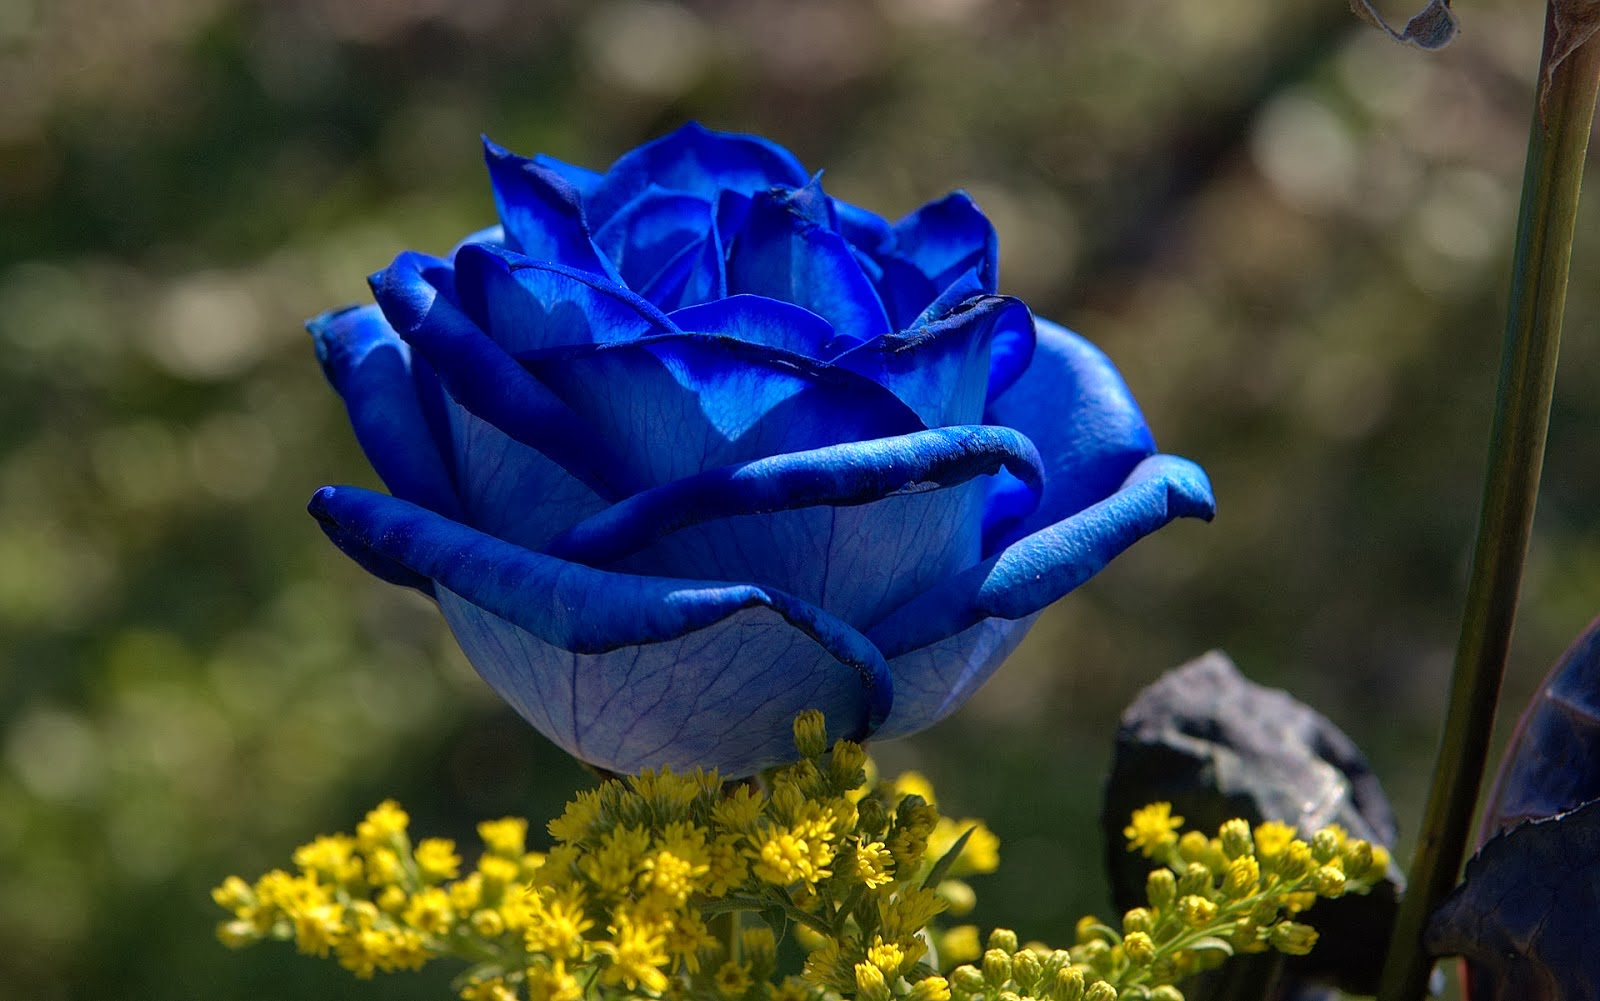 Real Blue Roses